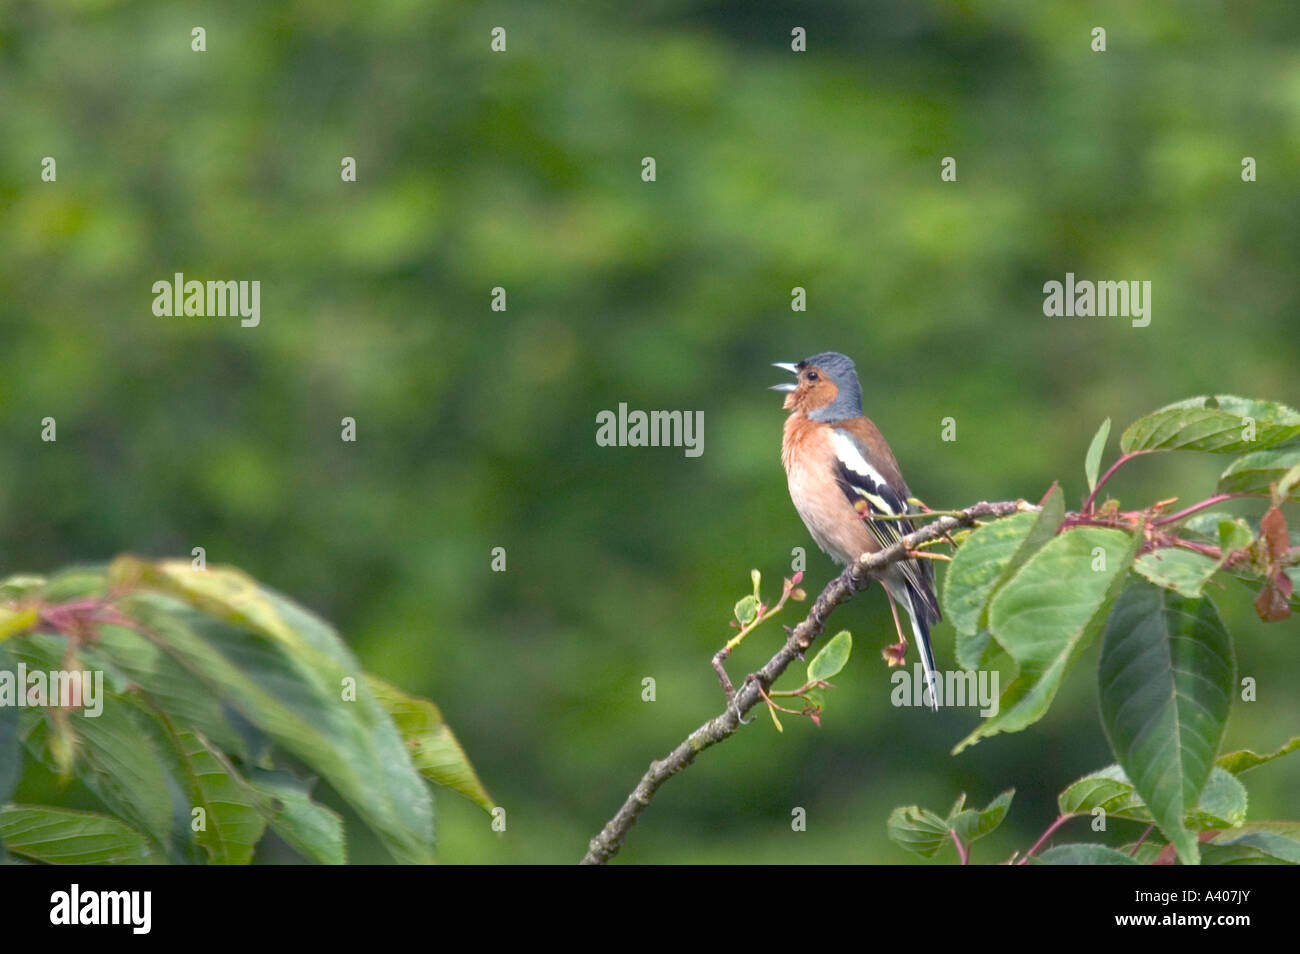 A Chaffinch singing in a cherry tree - Stock Image